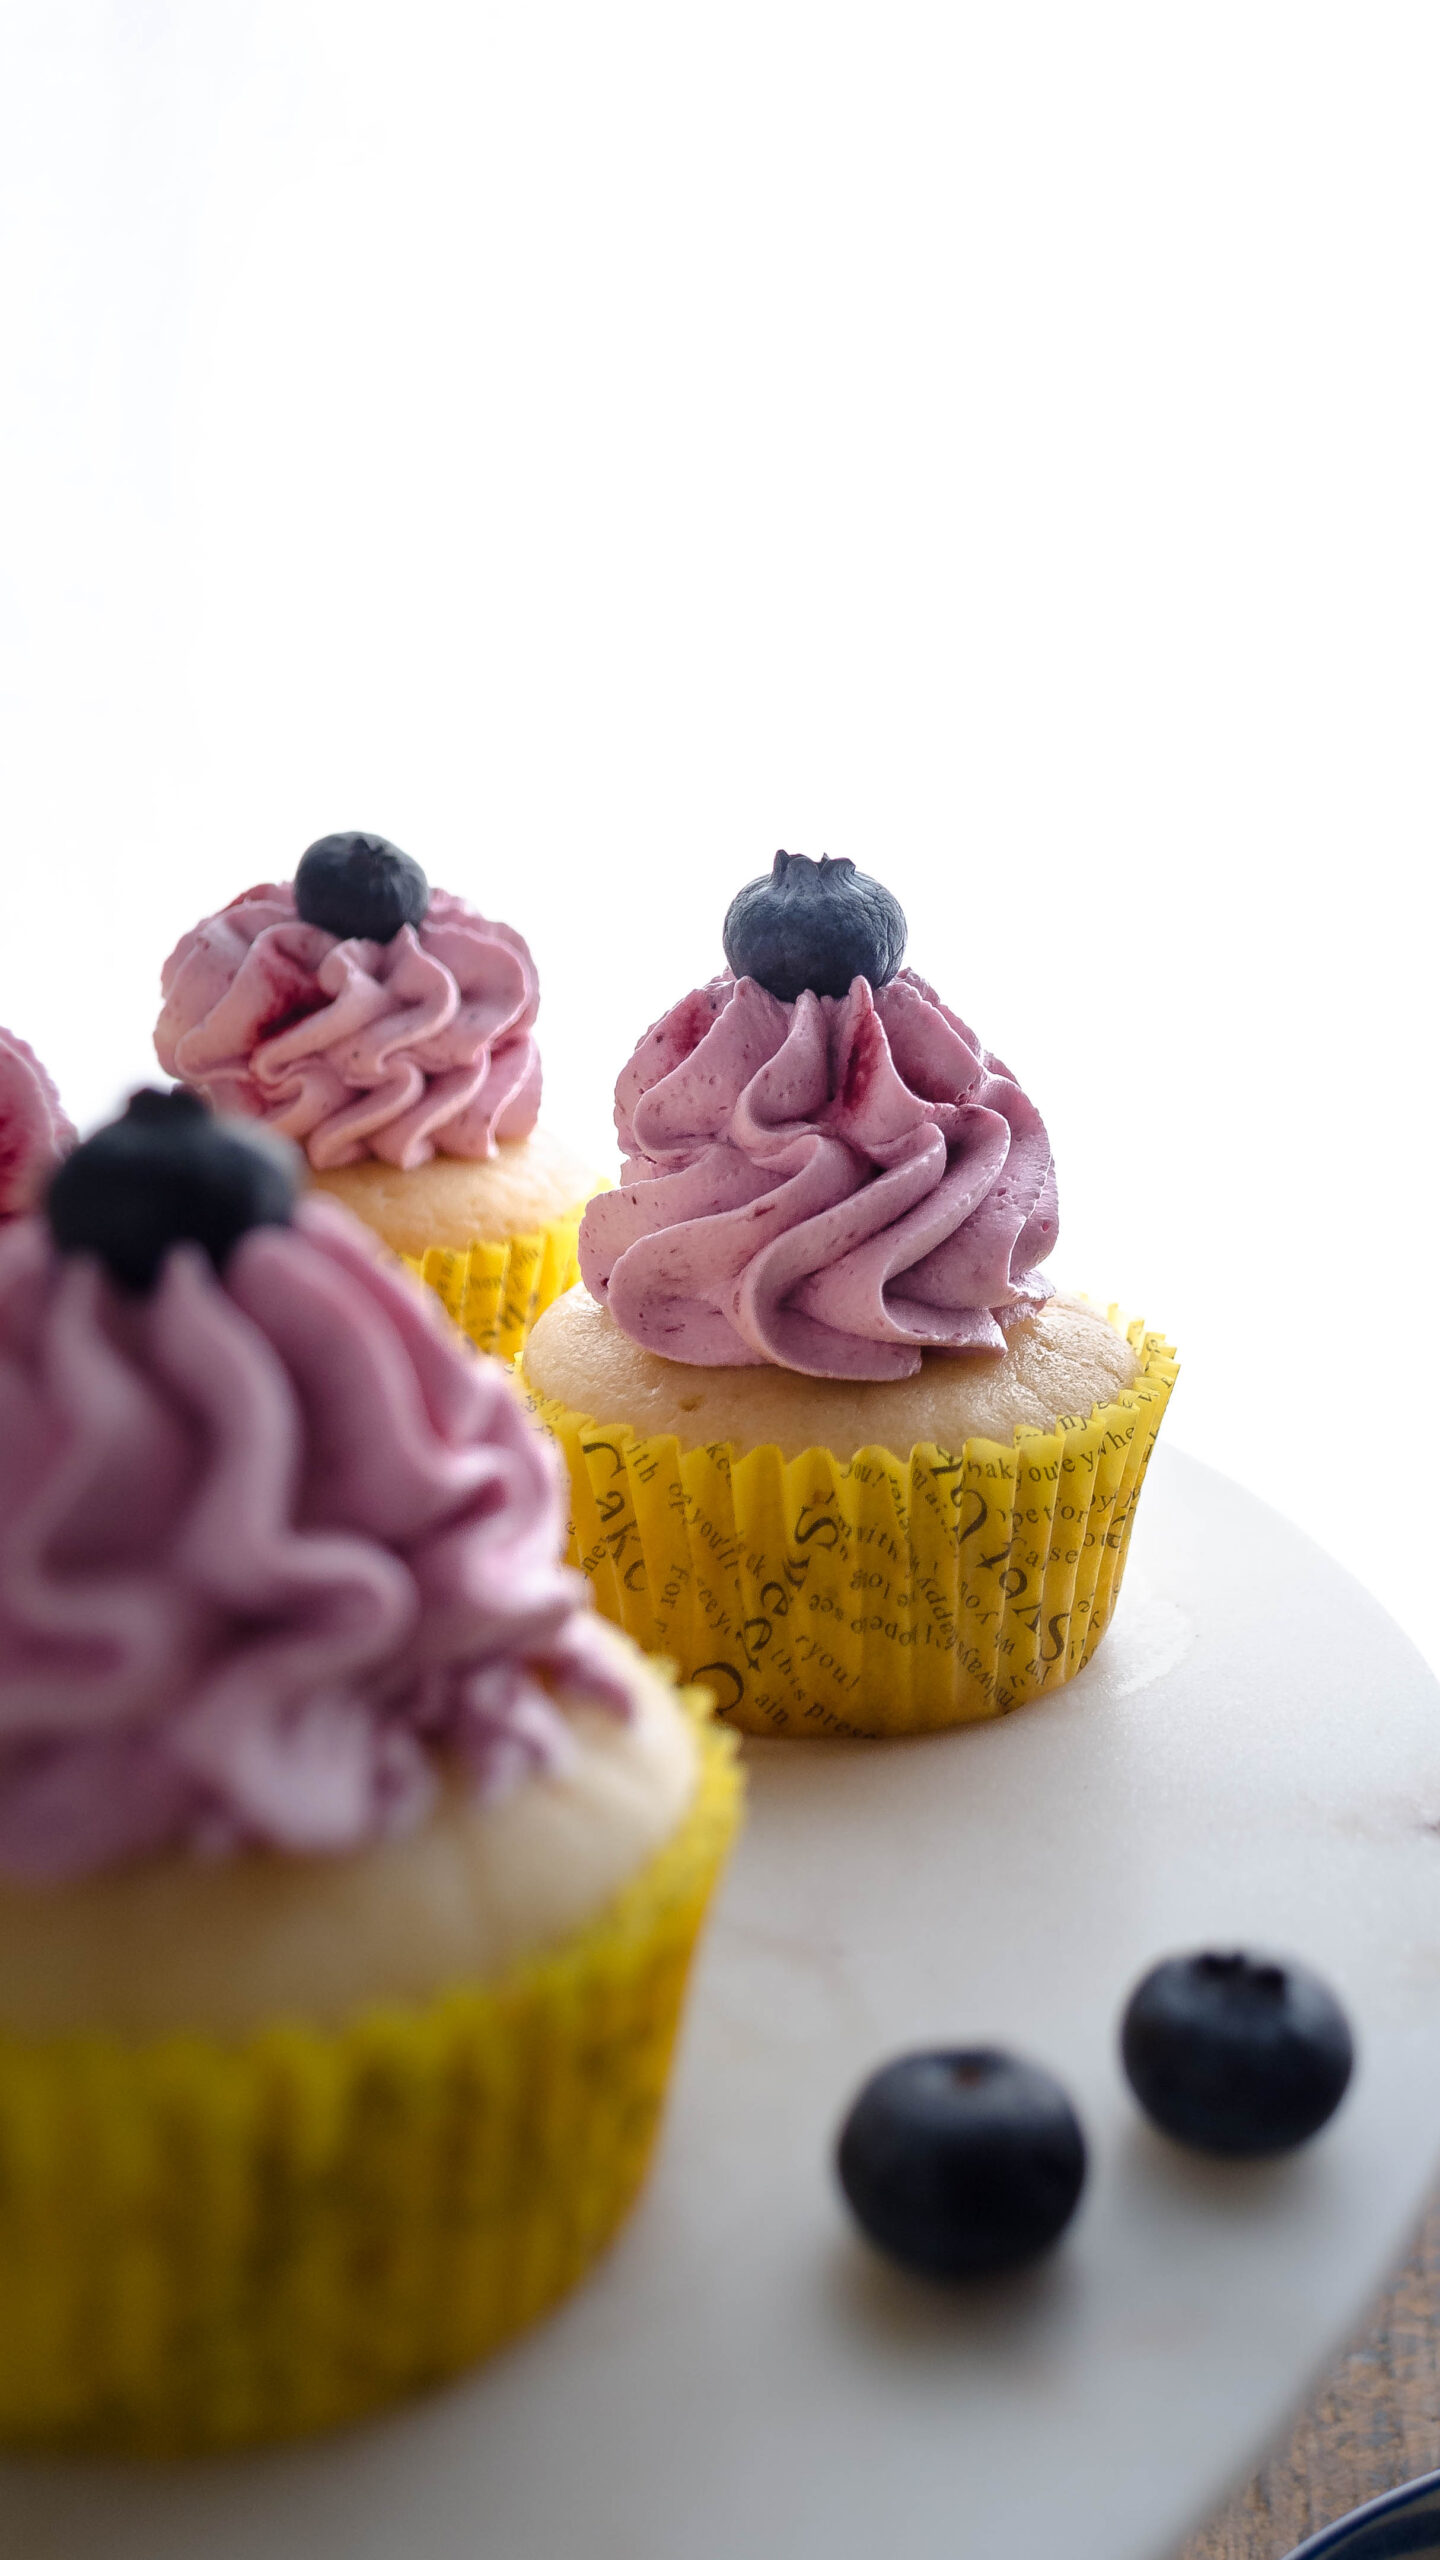 Eggless Lemon Cupcakes with Blueberry Frosting, easy cupcake recipes, lemon cupcakes, eggless cupcakes